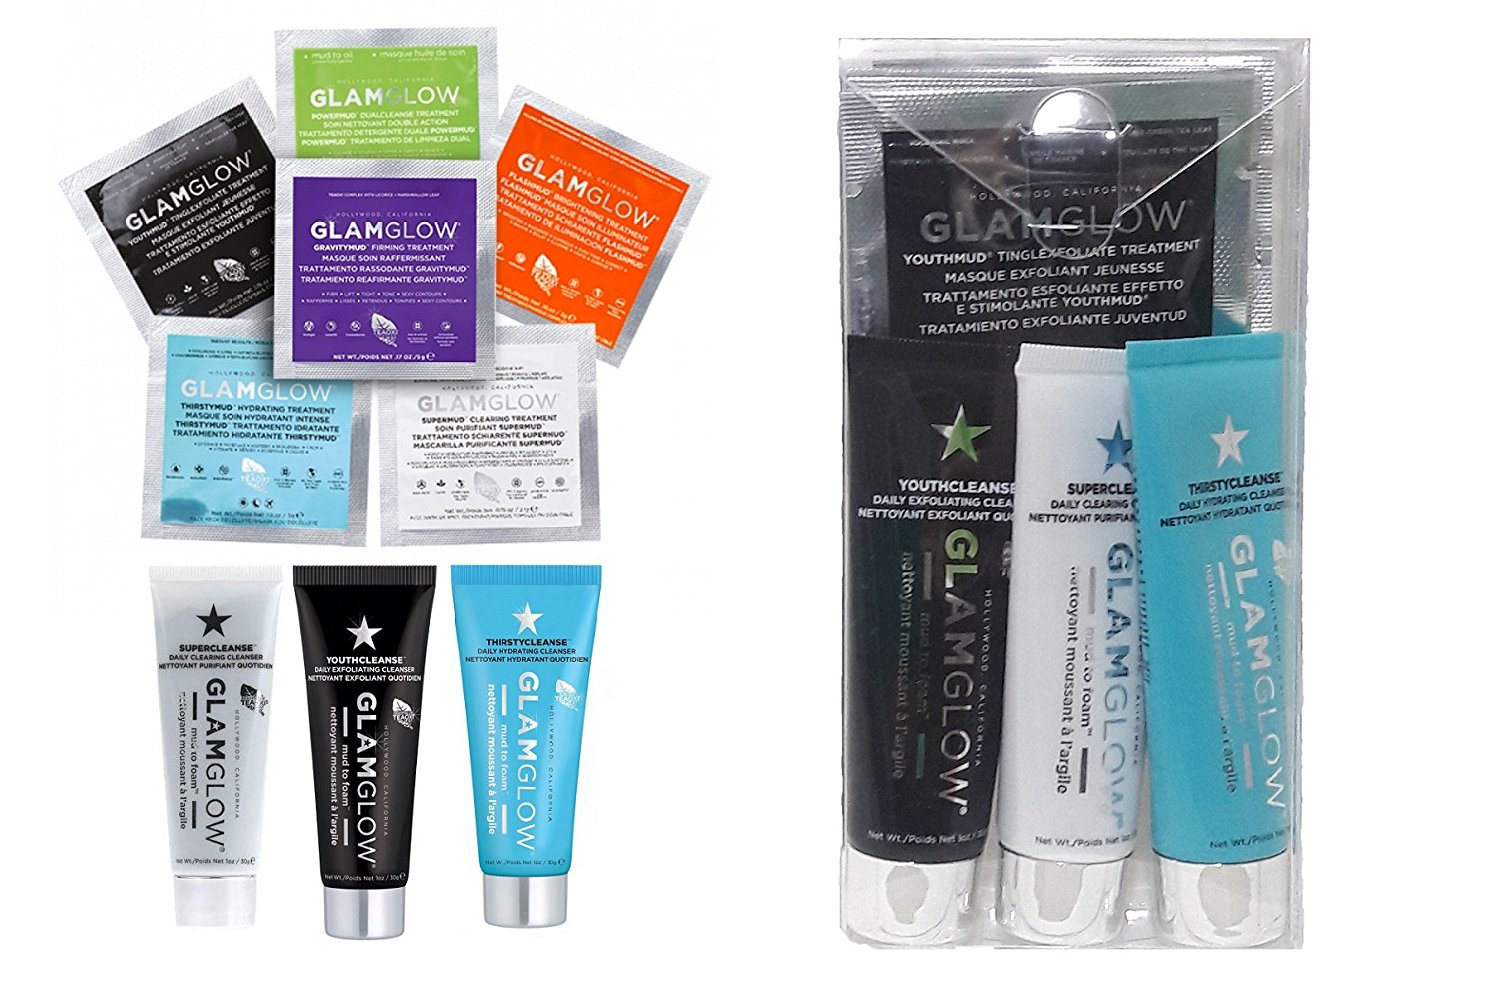 GLAMGOW TEASER (8 Pc) New in Box - 1 ea YOUTHMUD(0.17 oz), SUPERMUD(.07 oz), THIRSTYMUD (0.10 oz), POWERMUD (0.10 oz), FLASHMUD(0.10 oz), GRAVITYMUD (0.17 oz), YouthCLEANSE(1 oz), SuperCLEANSE(1 oz)